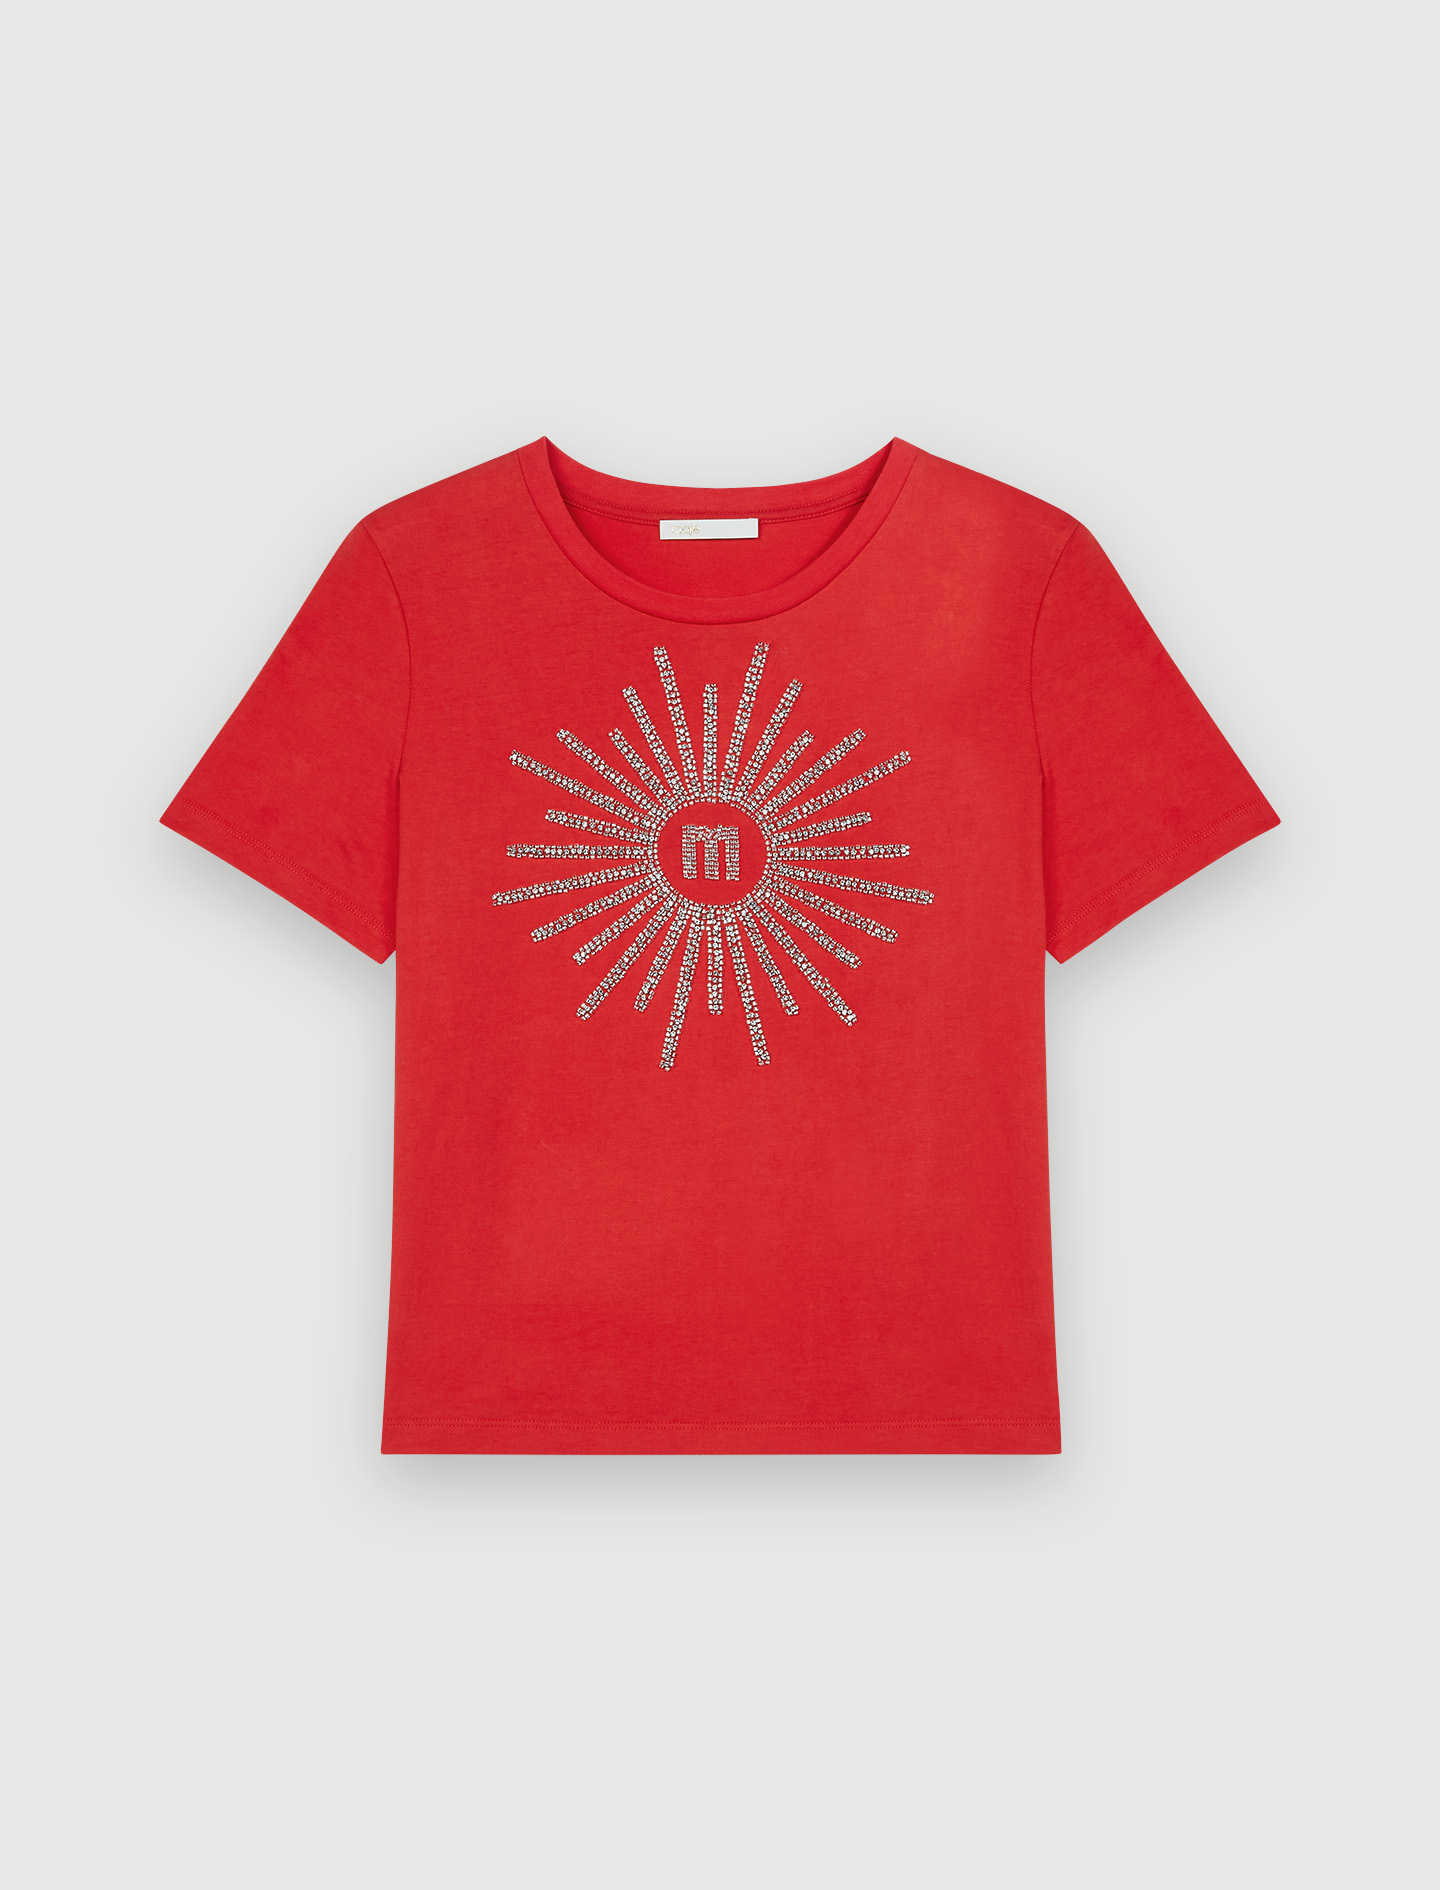 T-shirt with rhinestones and beads - Red